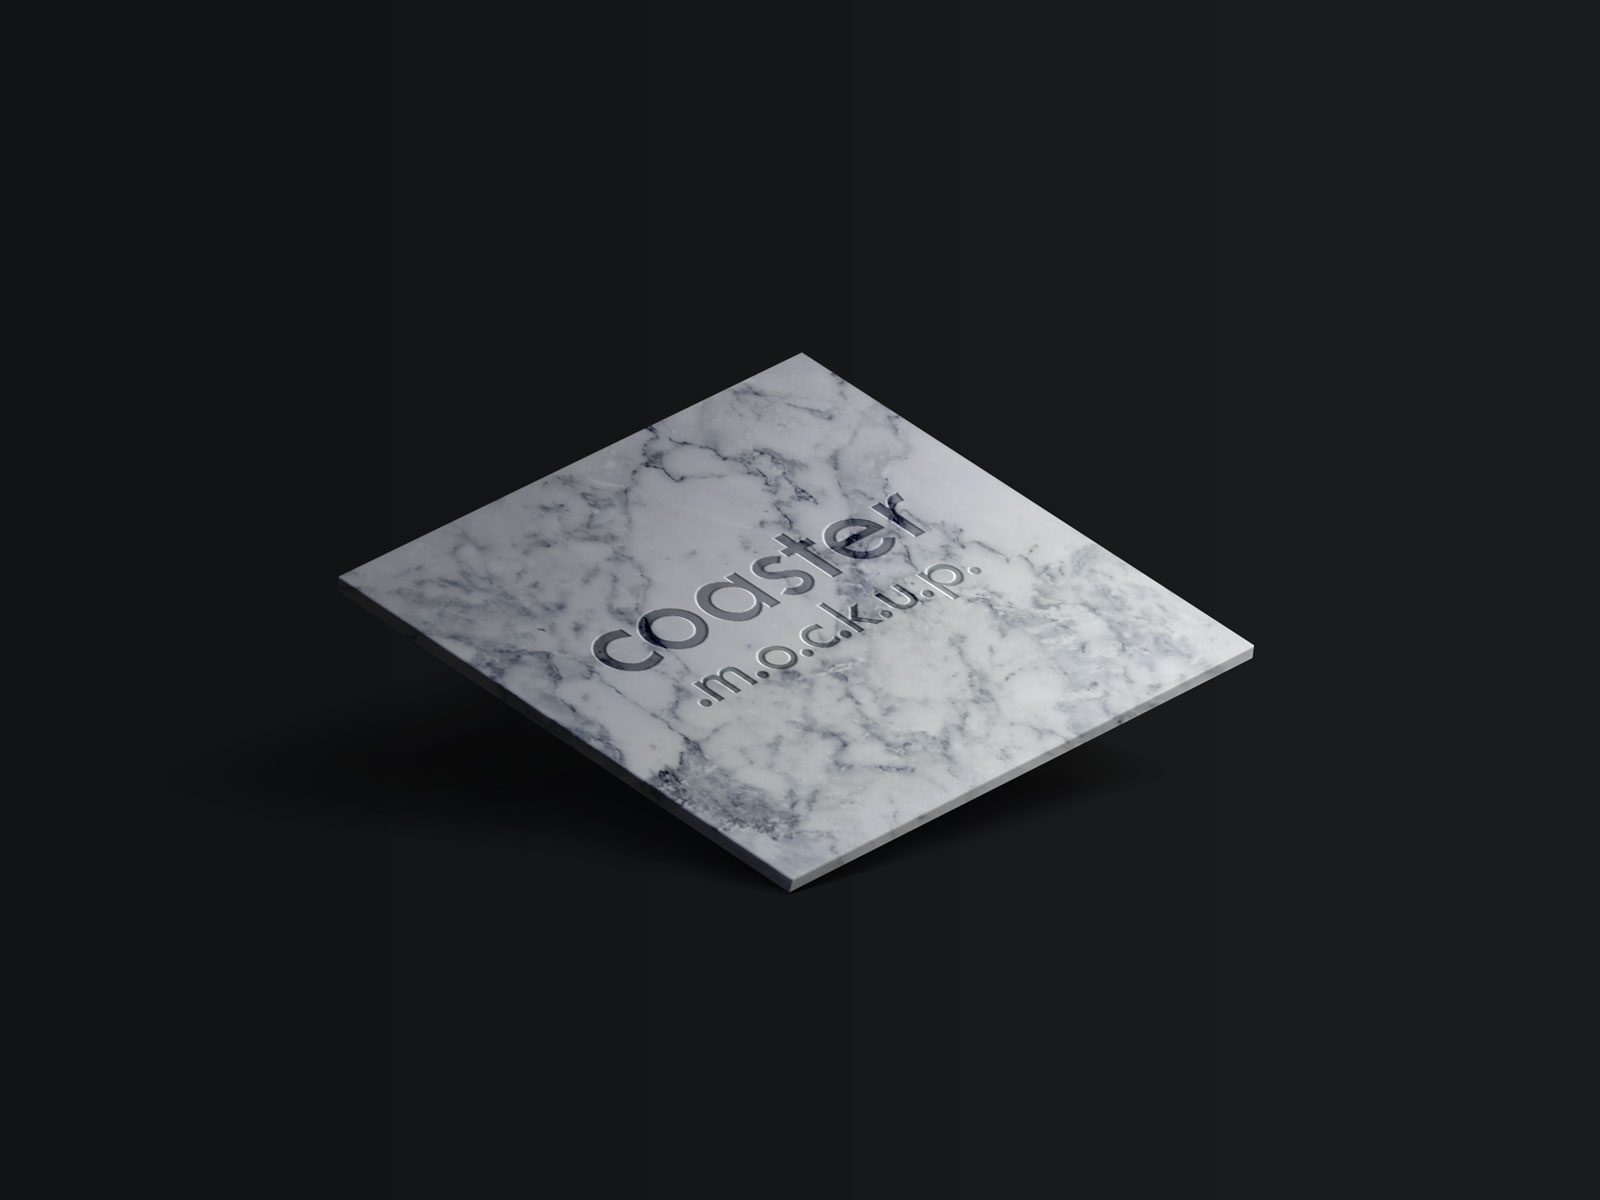 Free Square Coaster With Engraved Logo Mockup PSD